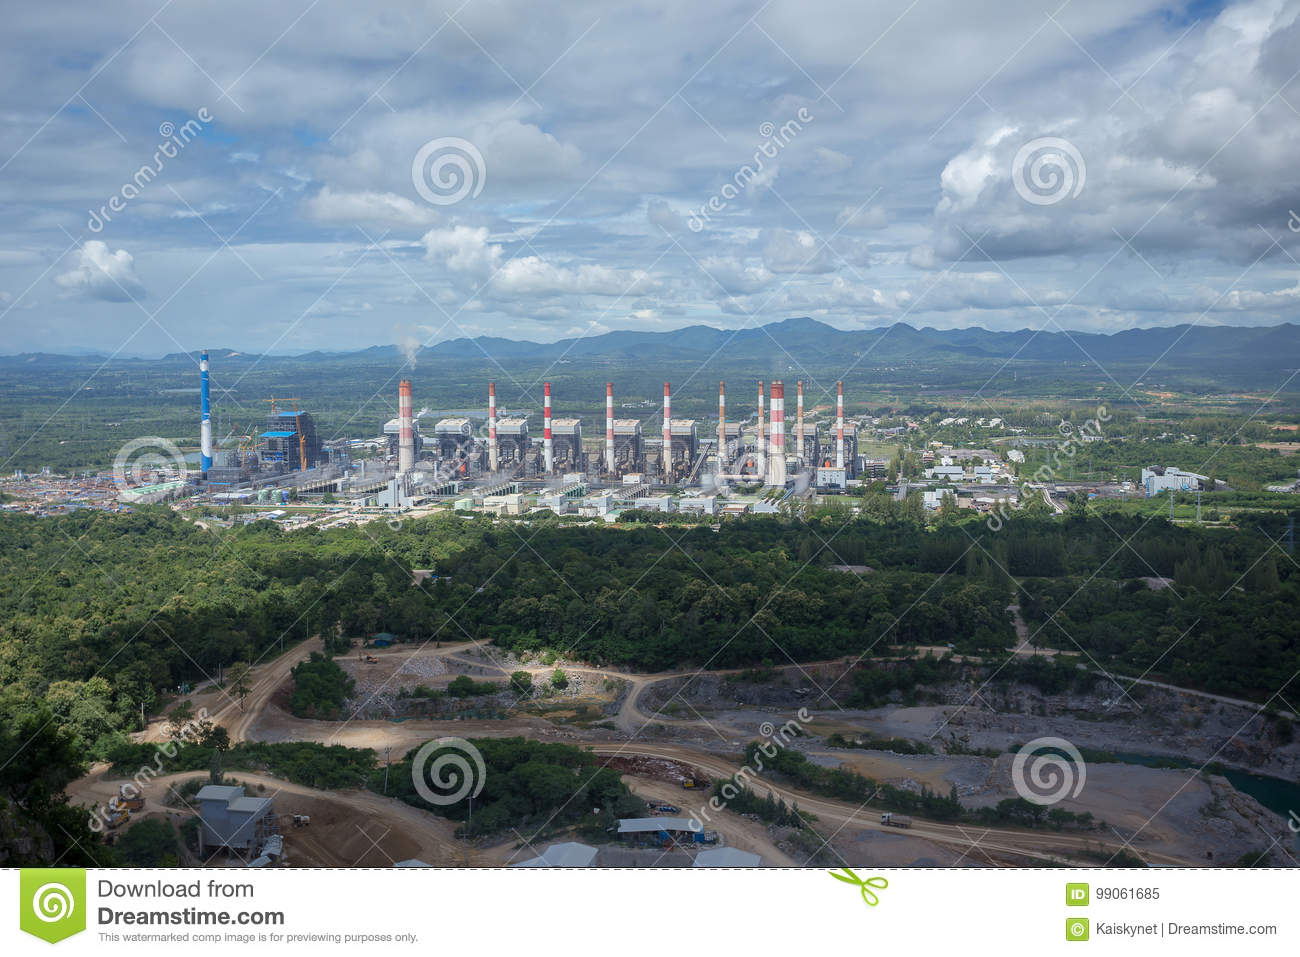 Thermal power plant. Mae Moh coal power plant in Lampang Thailand.